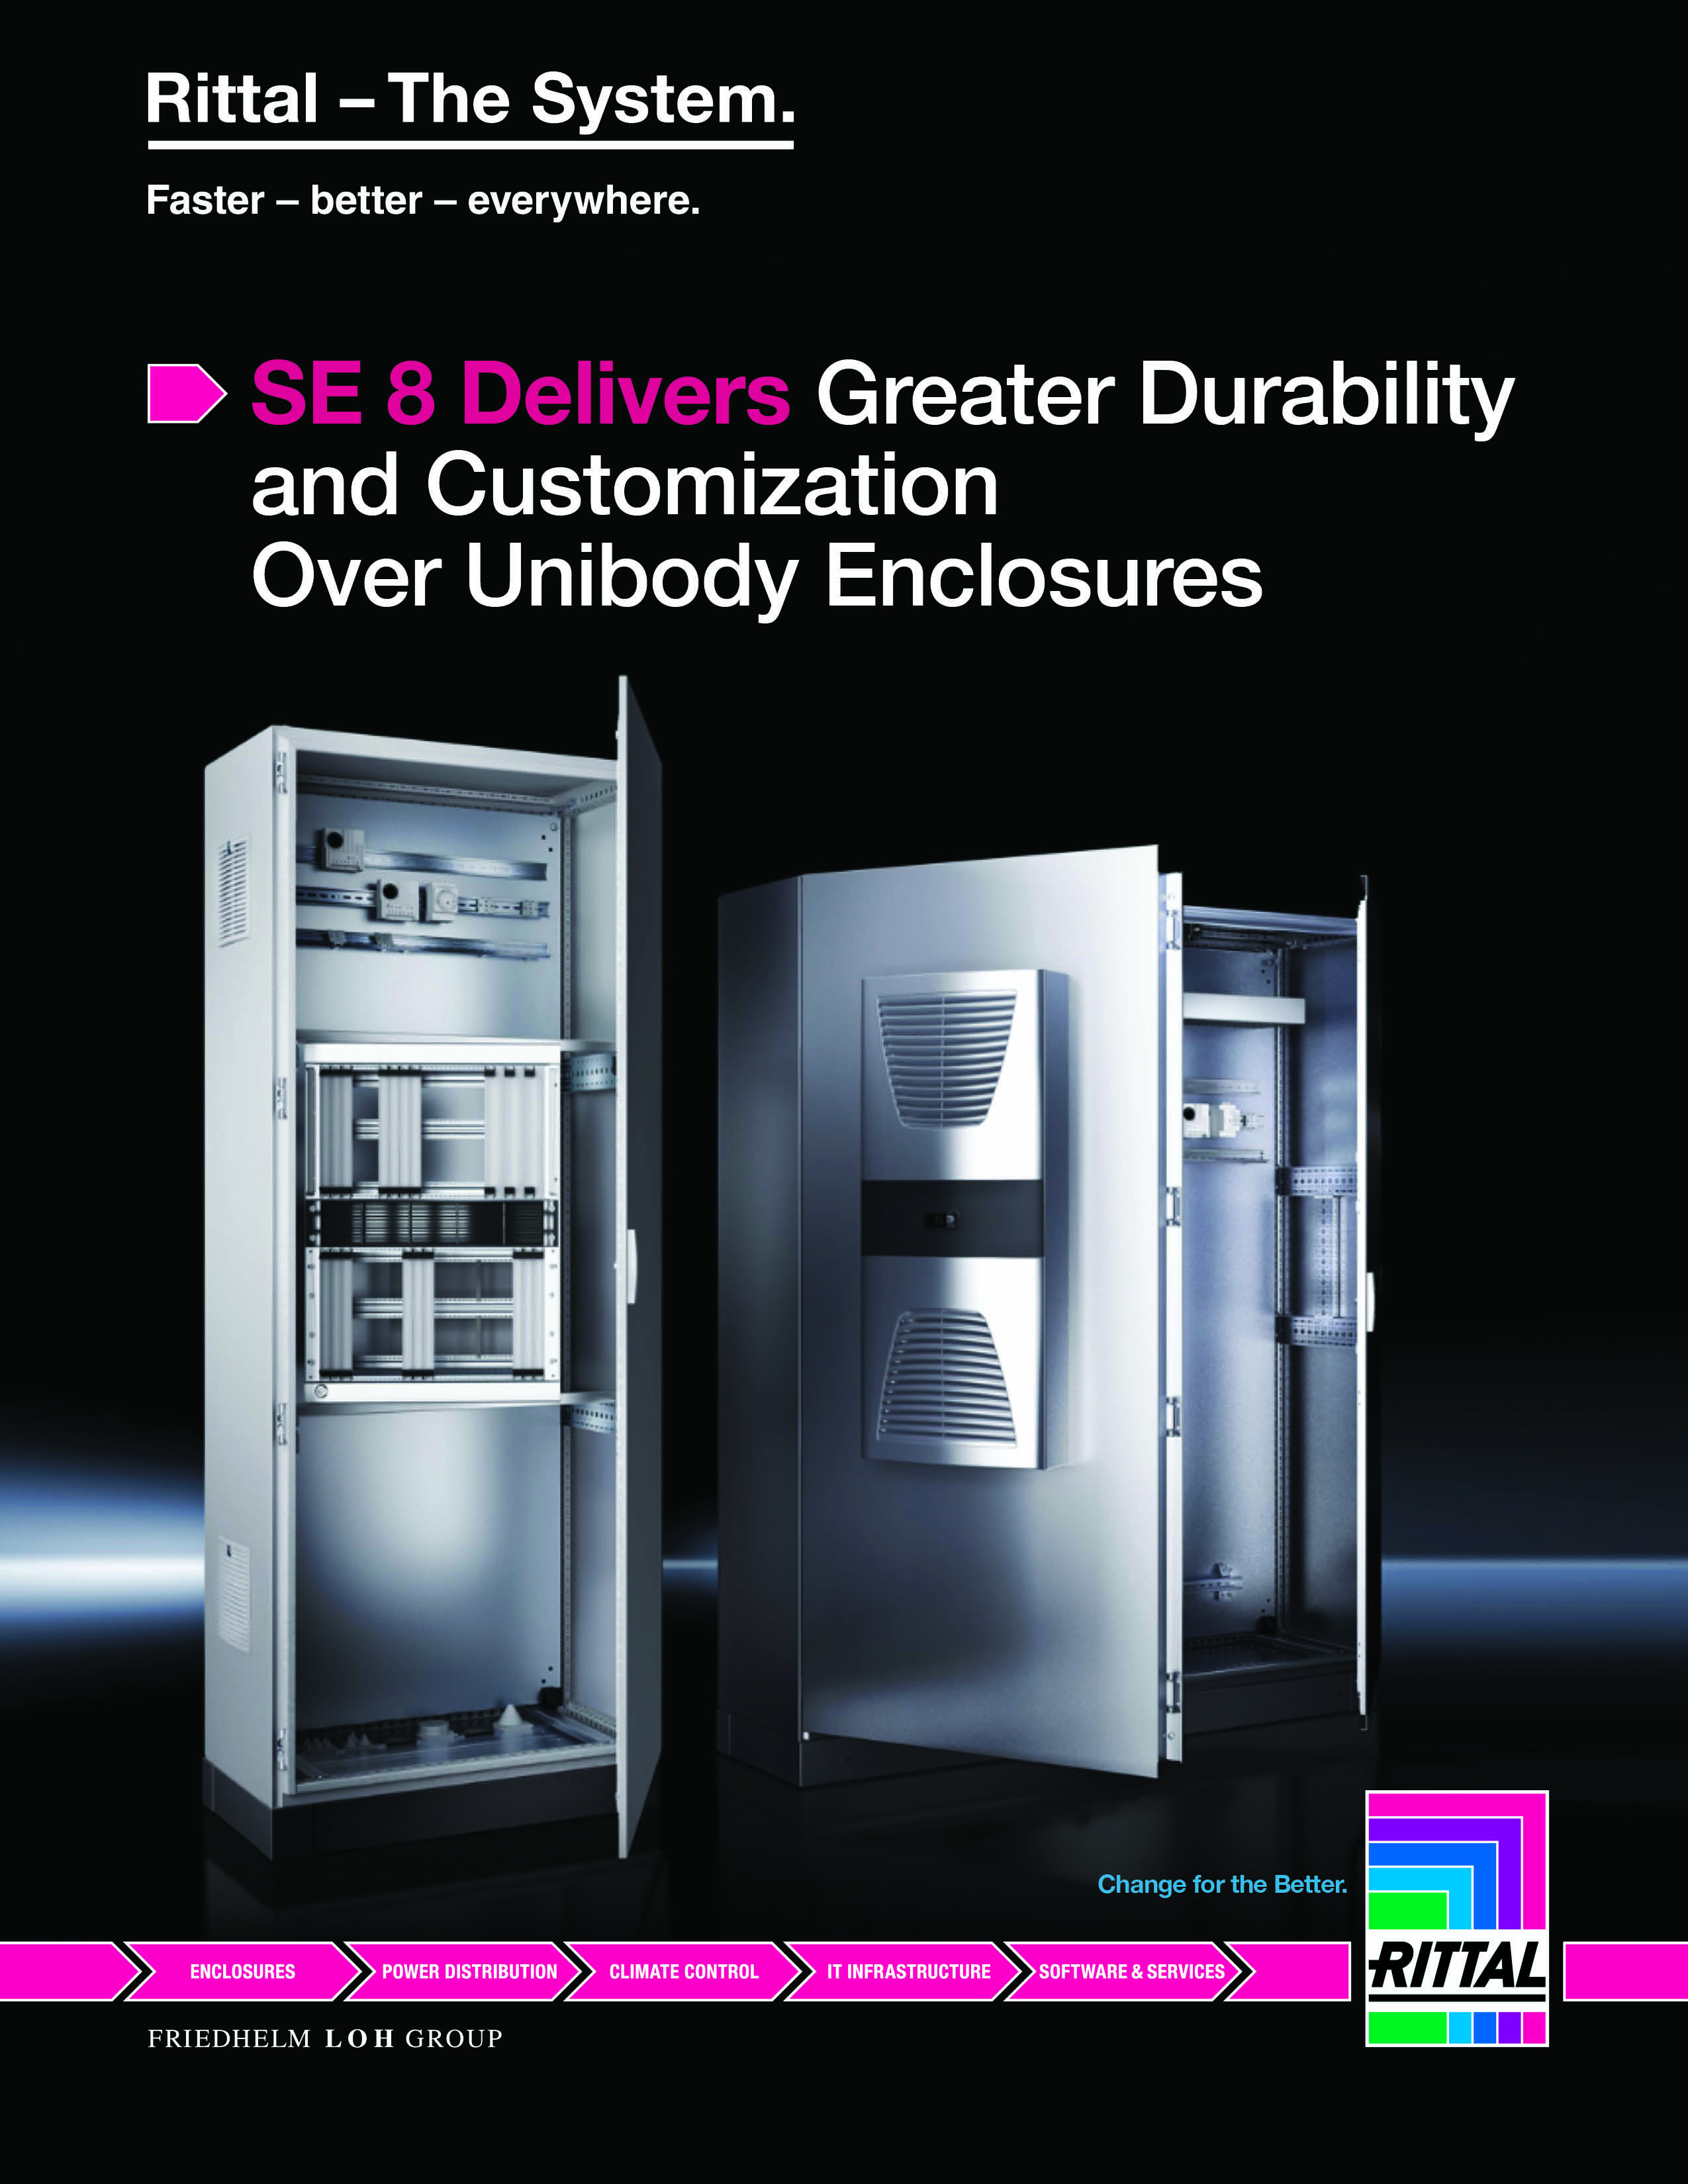 New Enclosure Line Offers Better Value and Durability Than Unibody Enclosures